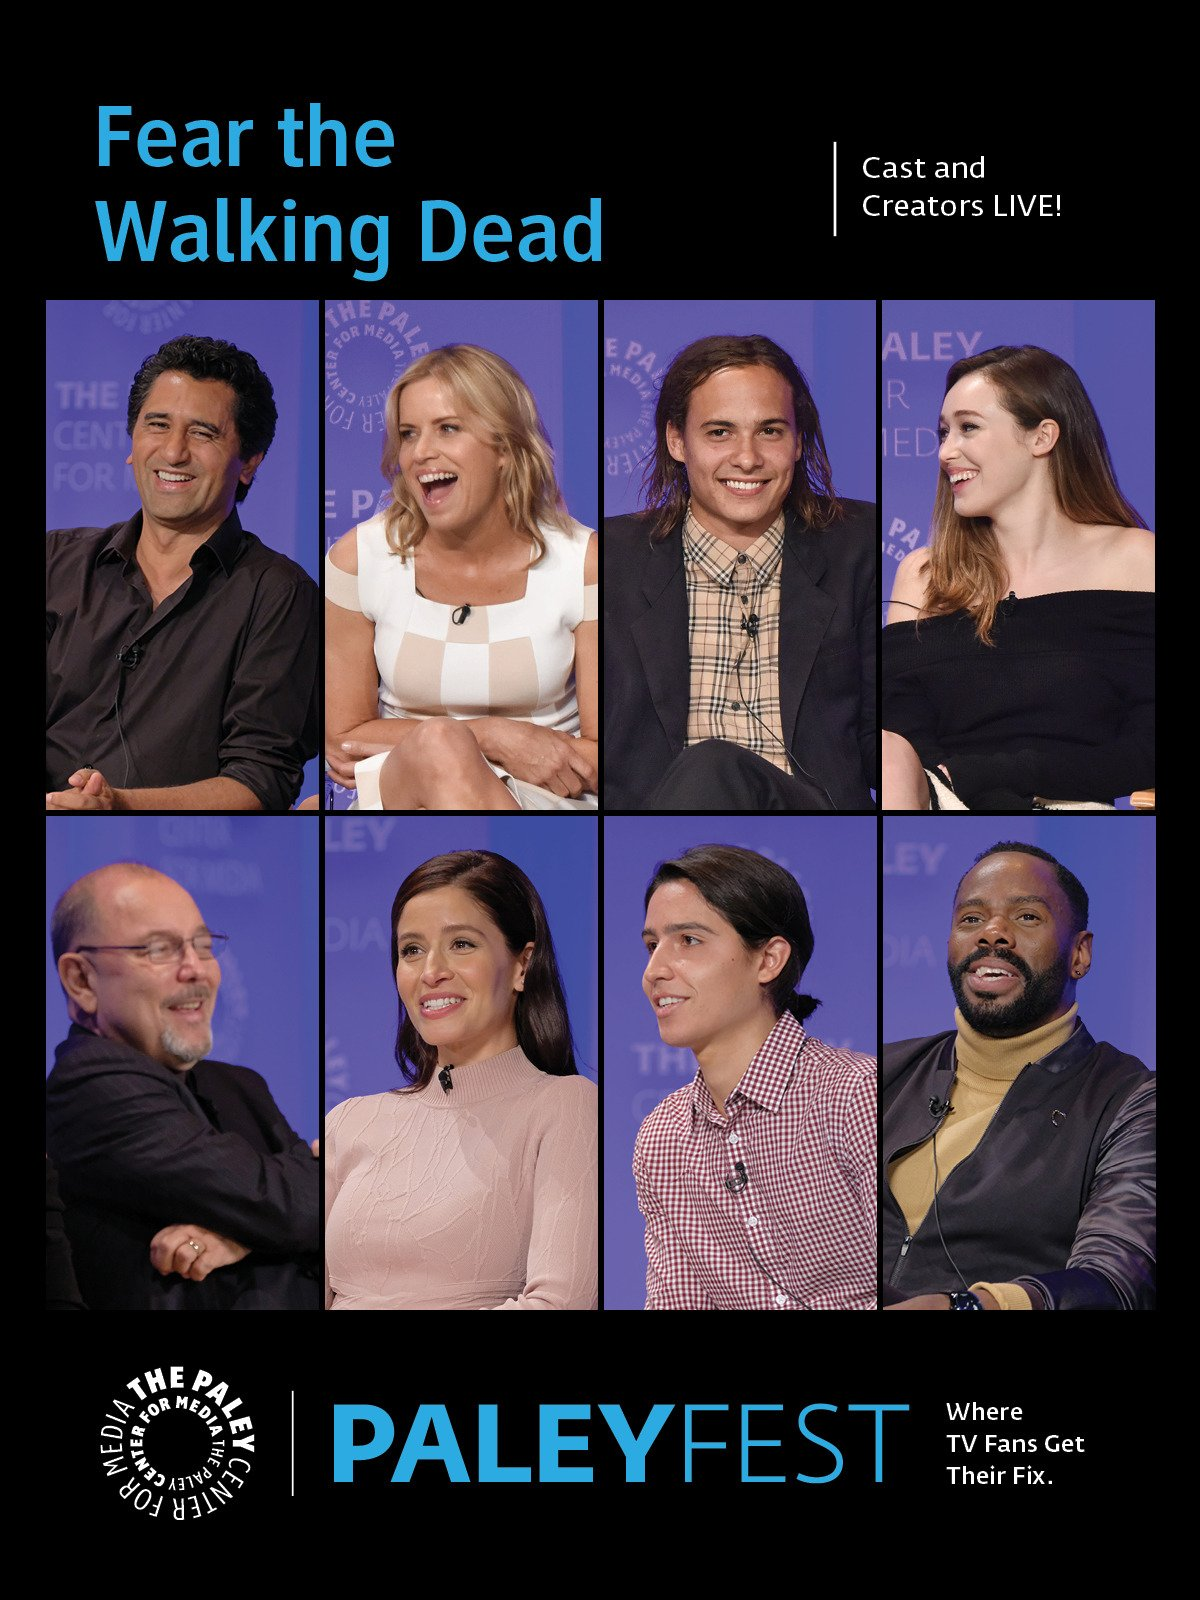 Fear the Walking Dead: Cast and Creators PaleyFest